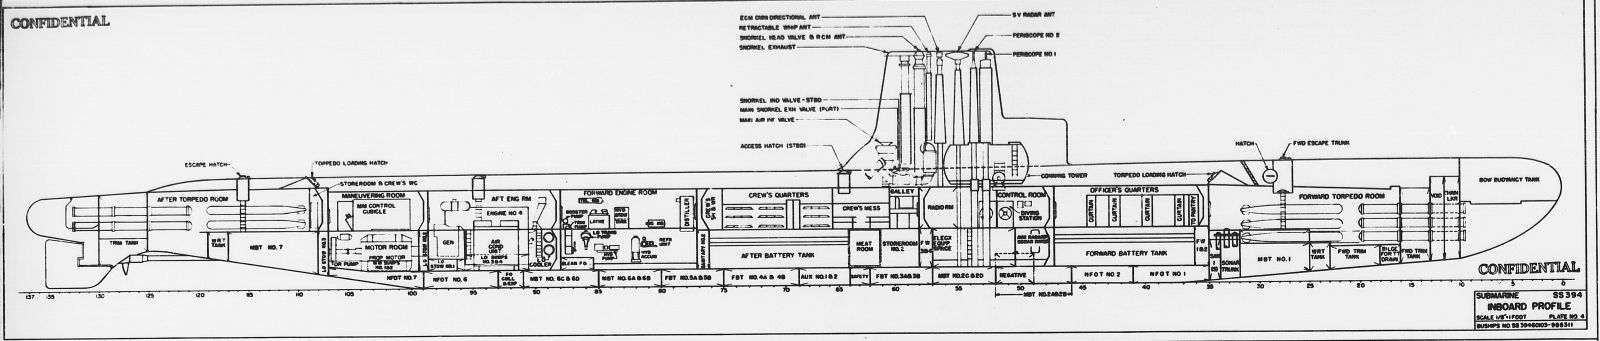 Arkansas inland maritime museum at north little rock new digitial recently aimm received a set of digital blueprints these blueprints were originally created in the 1950s to support the guppy program malvernweather Gallery